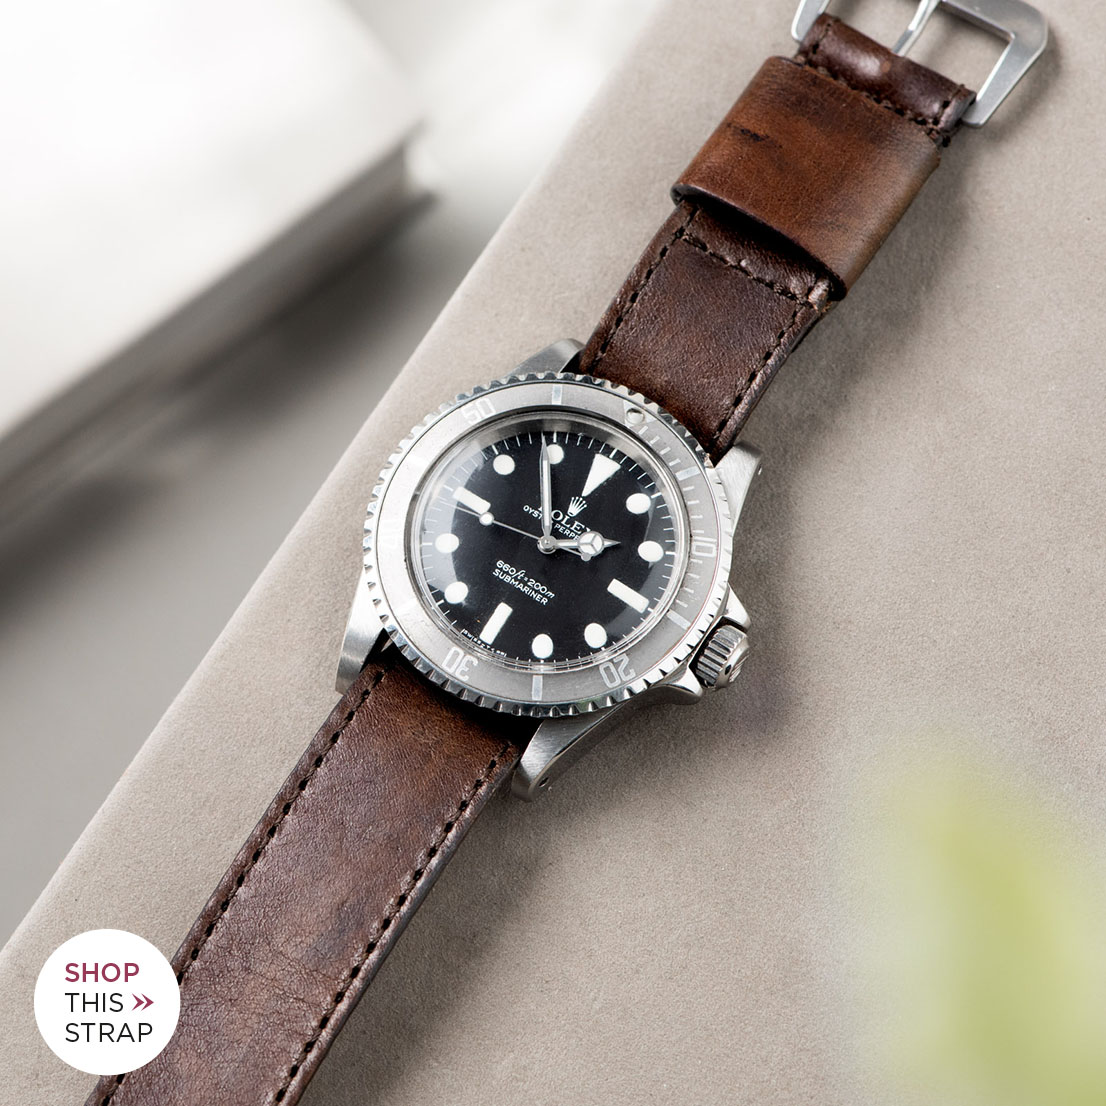 Bulang and Sons_Strap Guide_Rolex Submariner 5513 Faded_ONE PIECE NATO BROWN LUMBERJACK LEATHER WATCH STRAP